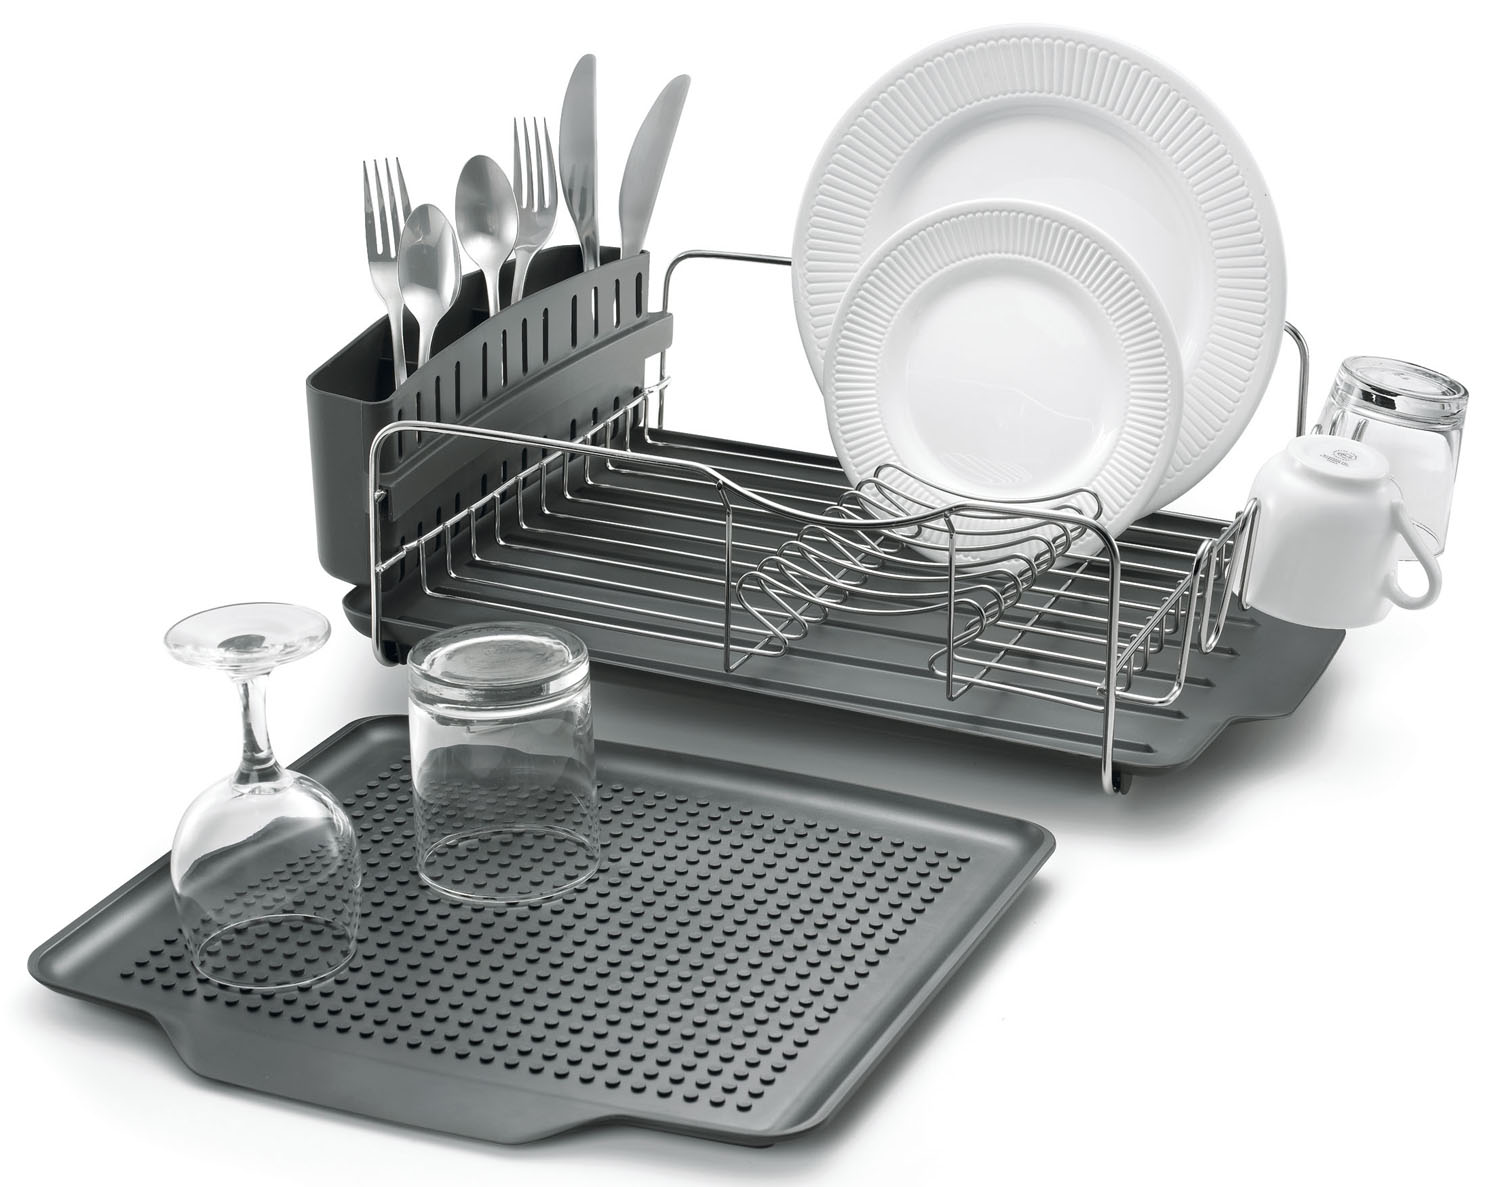 Polder Dish Rack- Dish Rack W/O Mat From Polder (Part Number KTH-615)